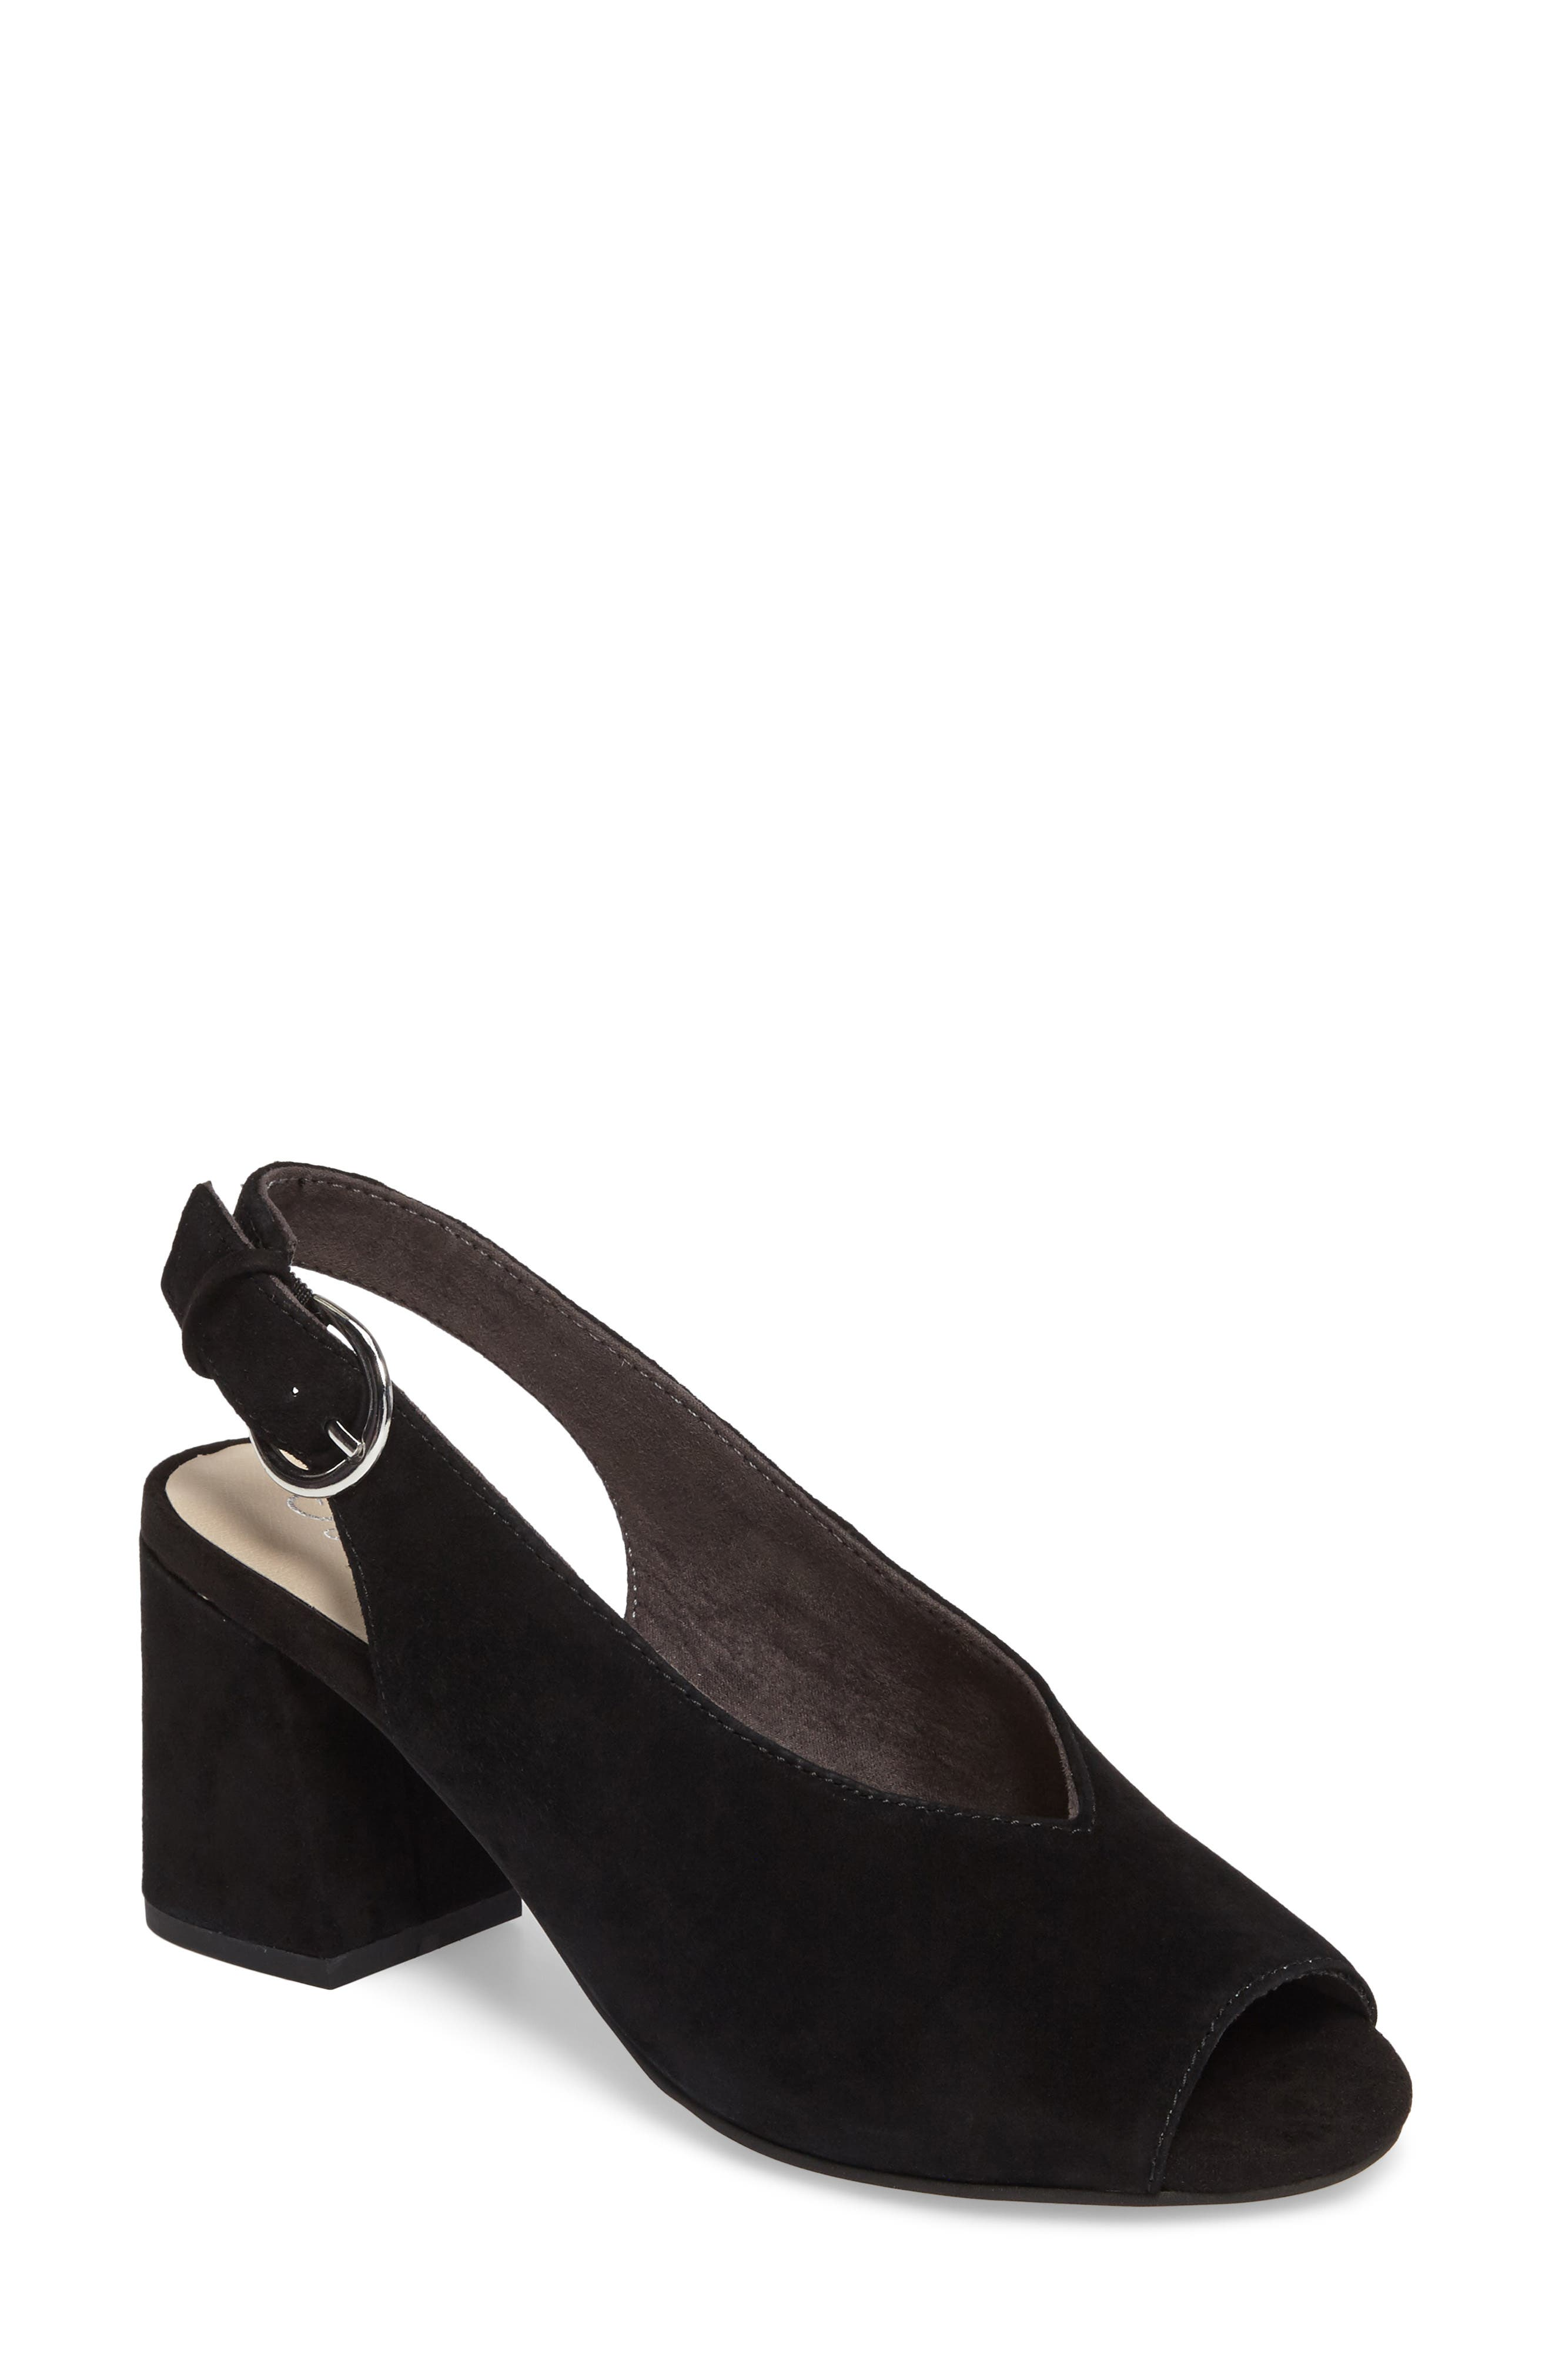 SEYCHELLES Playwright Slingback Sandal, Main, color, 001